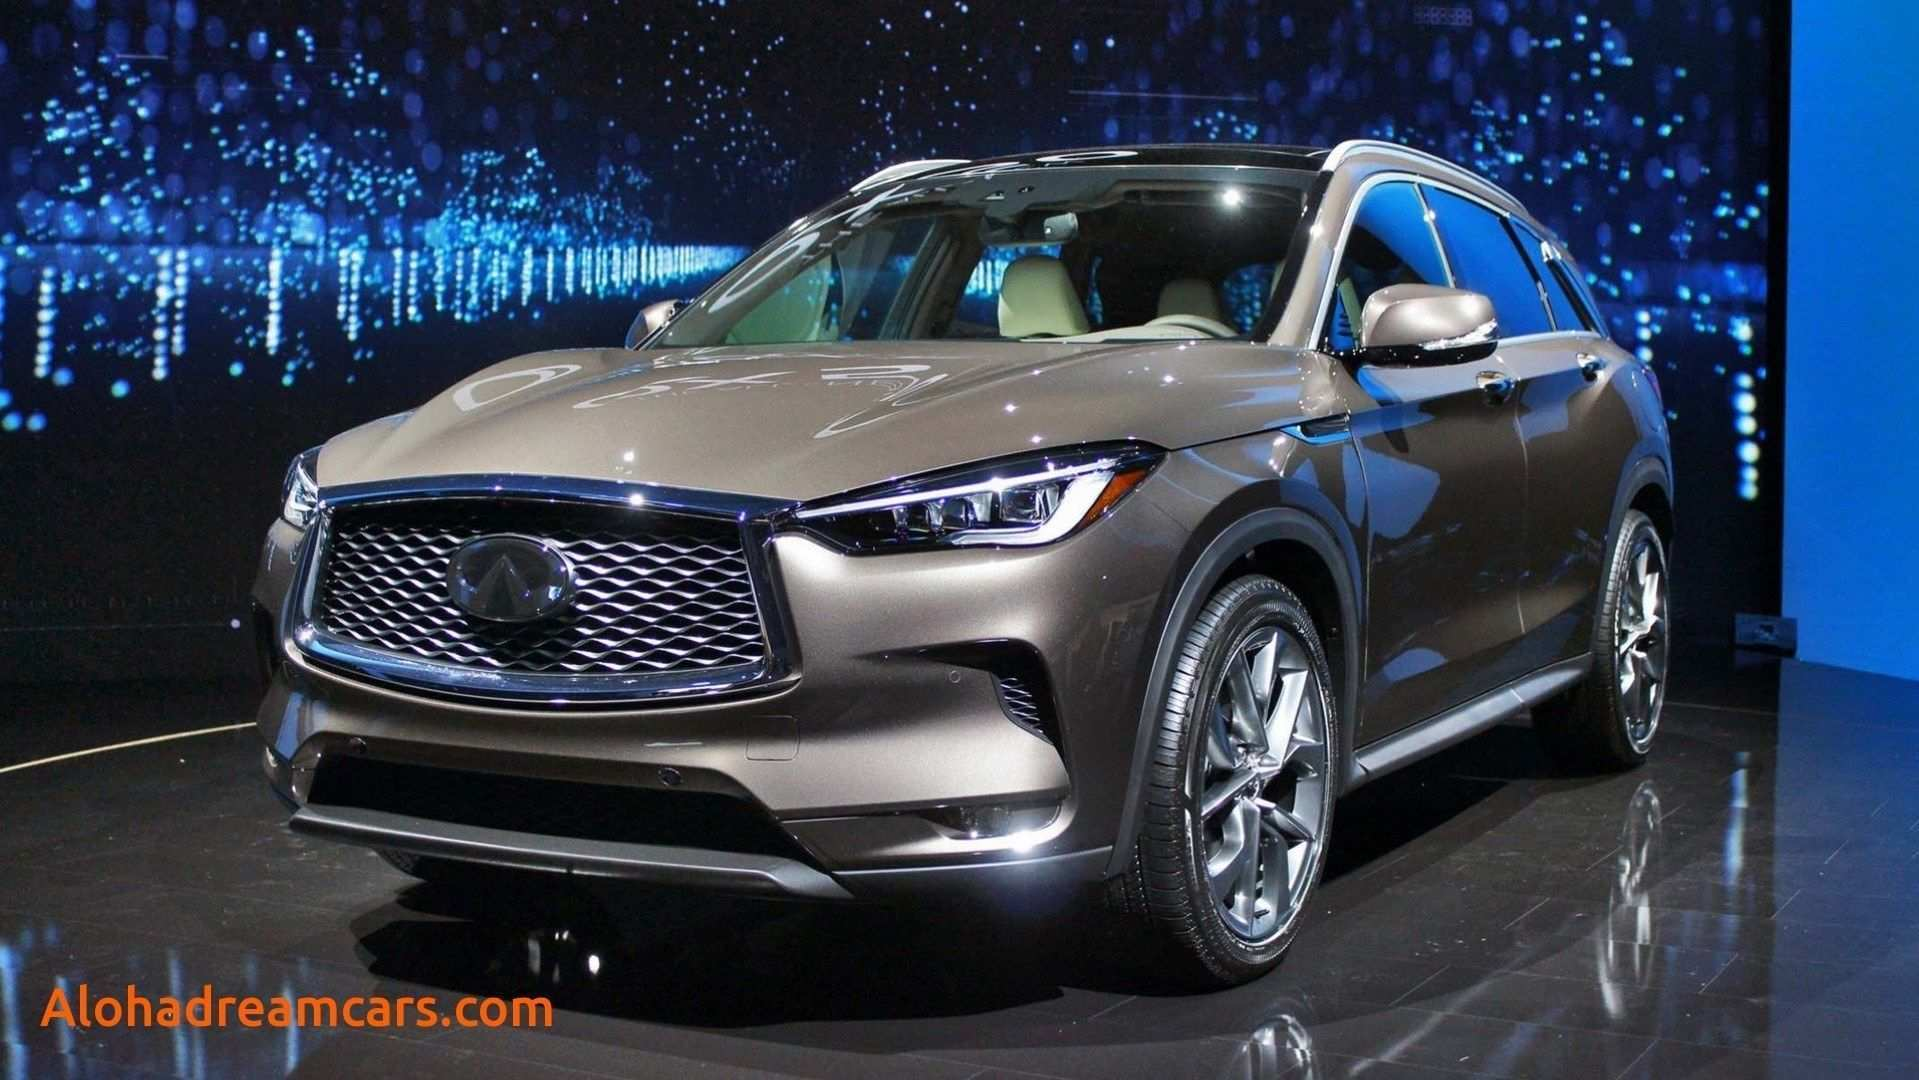 57 Great 2020 Infiniti Qx50 Exterior Overview for 2020 Infiniti Qx50 Exterior